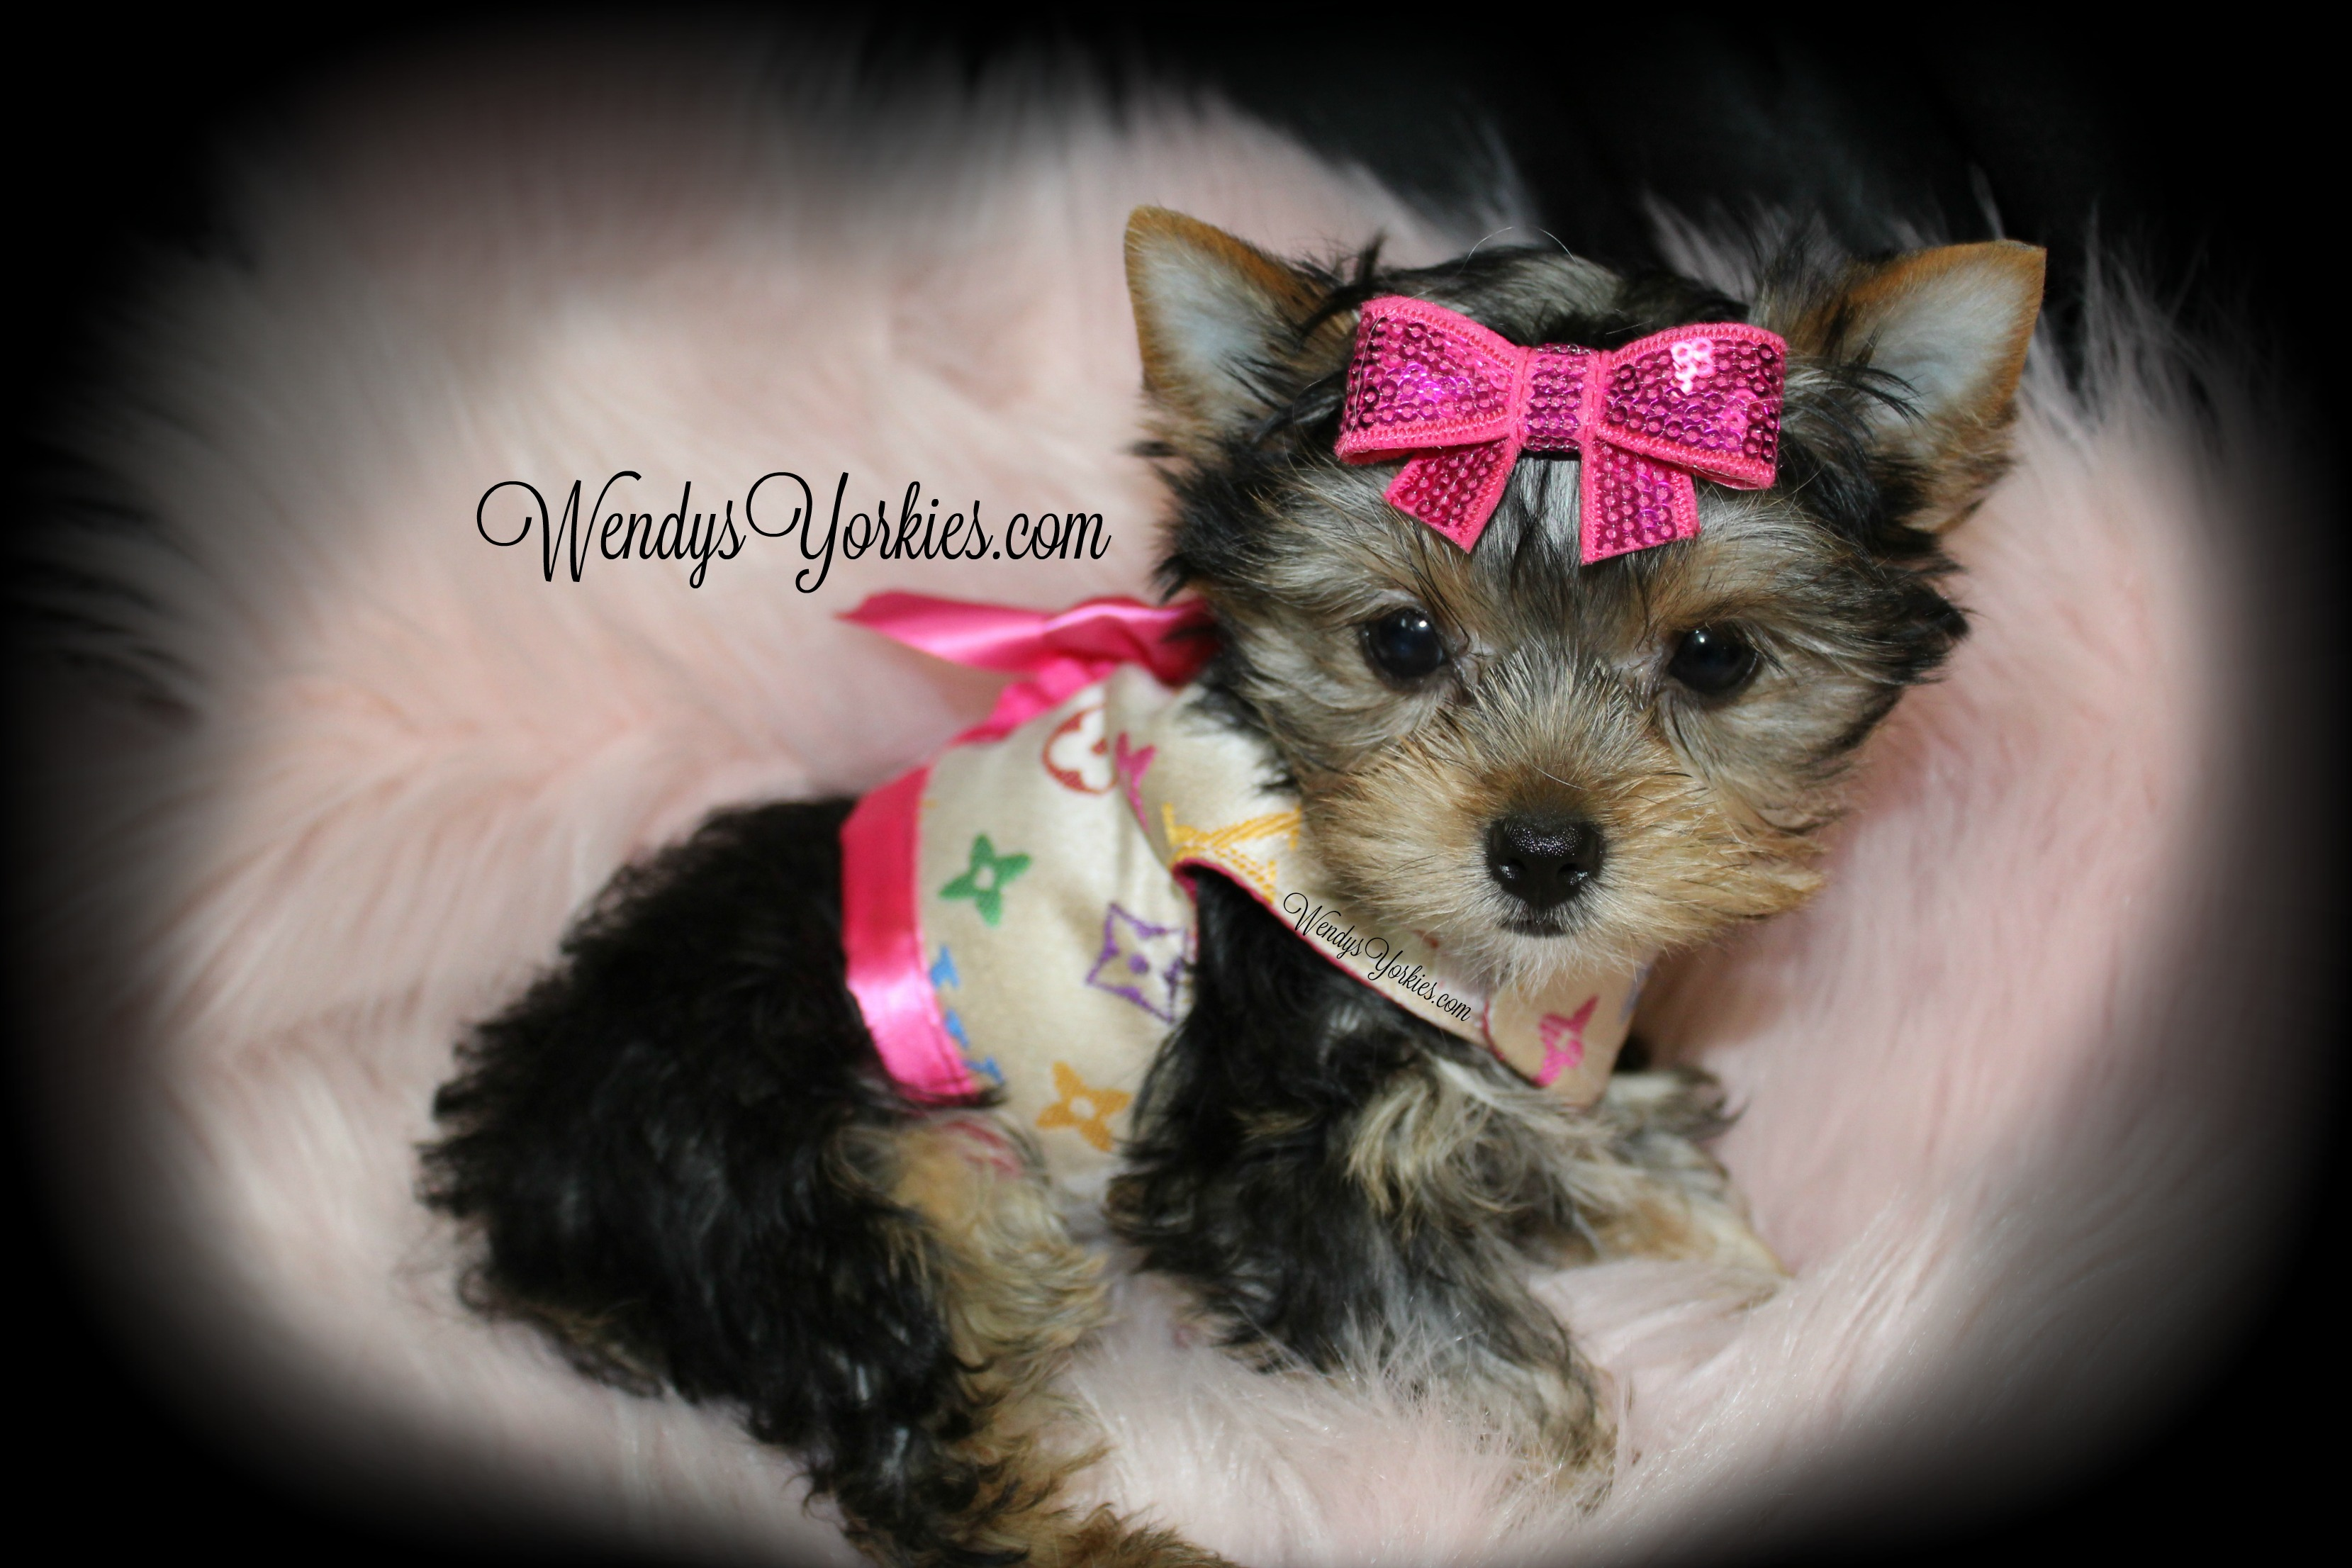 Tiny Yorkie puppy for sale, WendysYorkies.com, LouLou f1